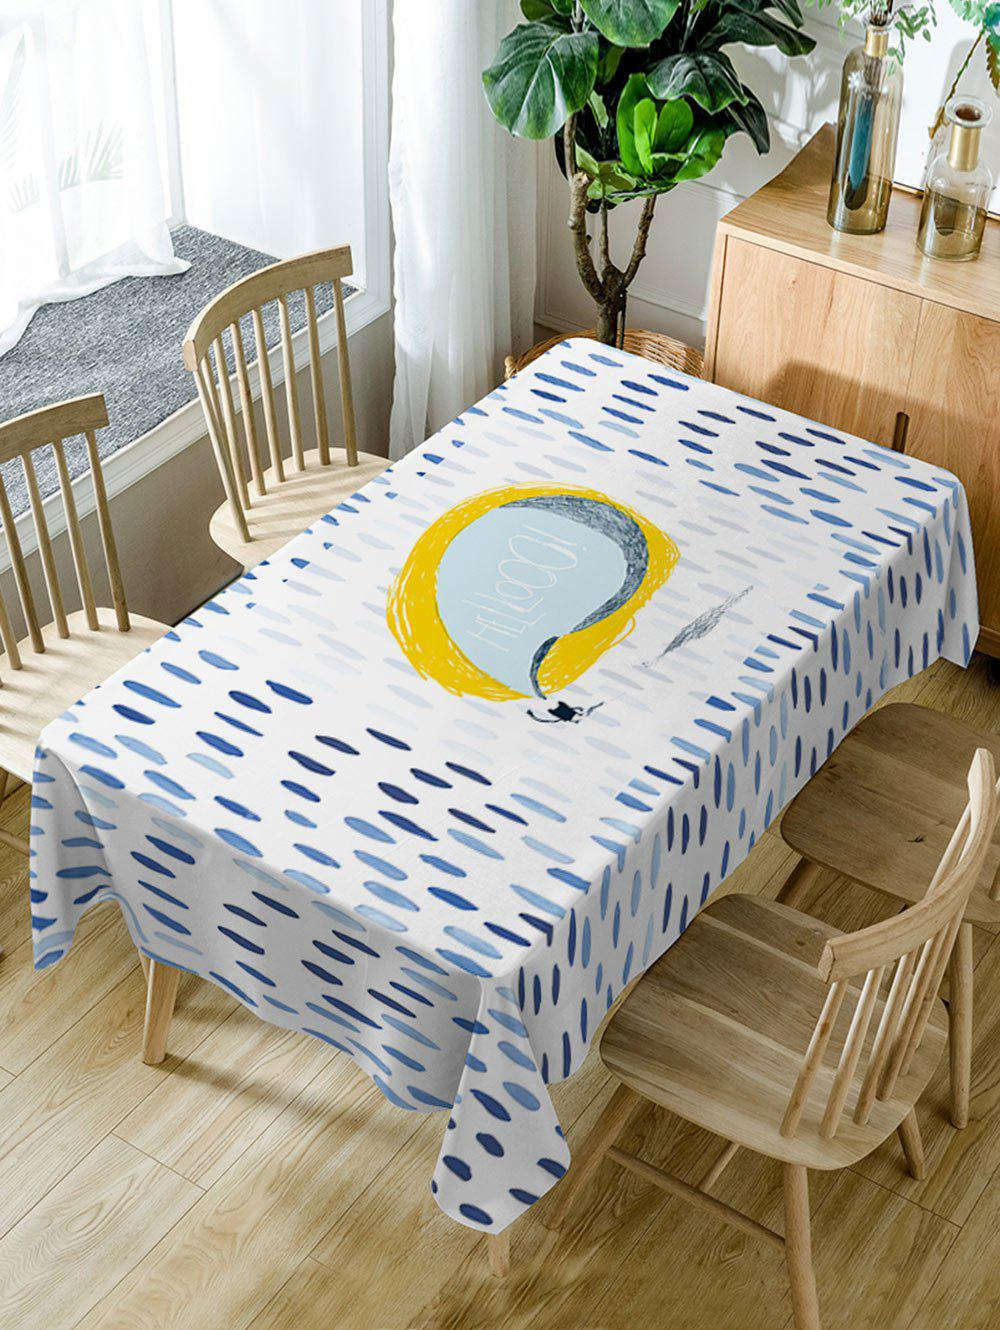 Fashion Rain Print Waterproof Table Cloth